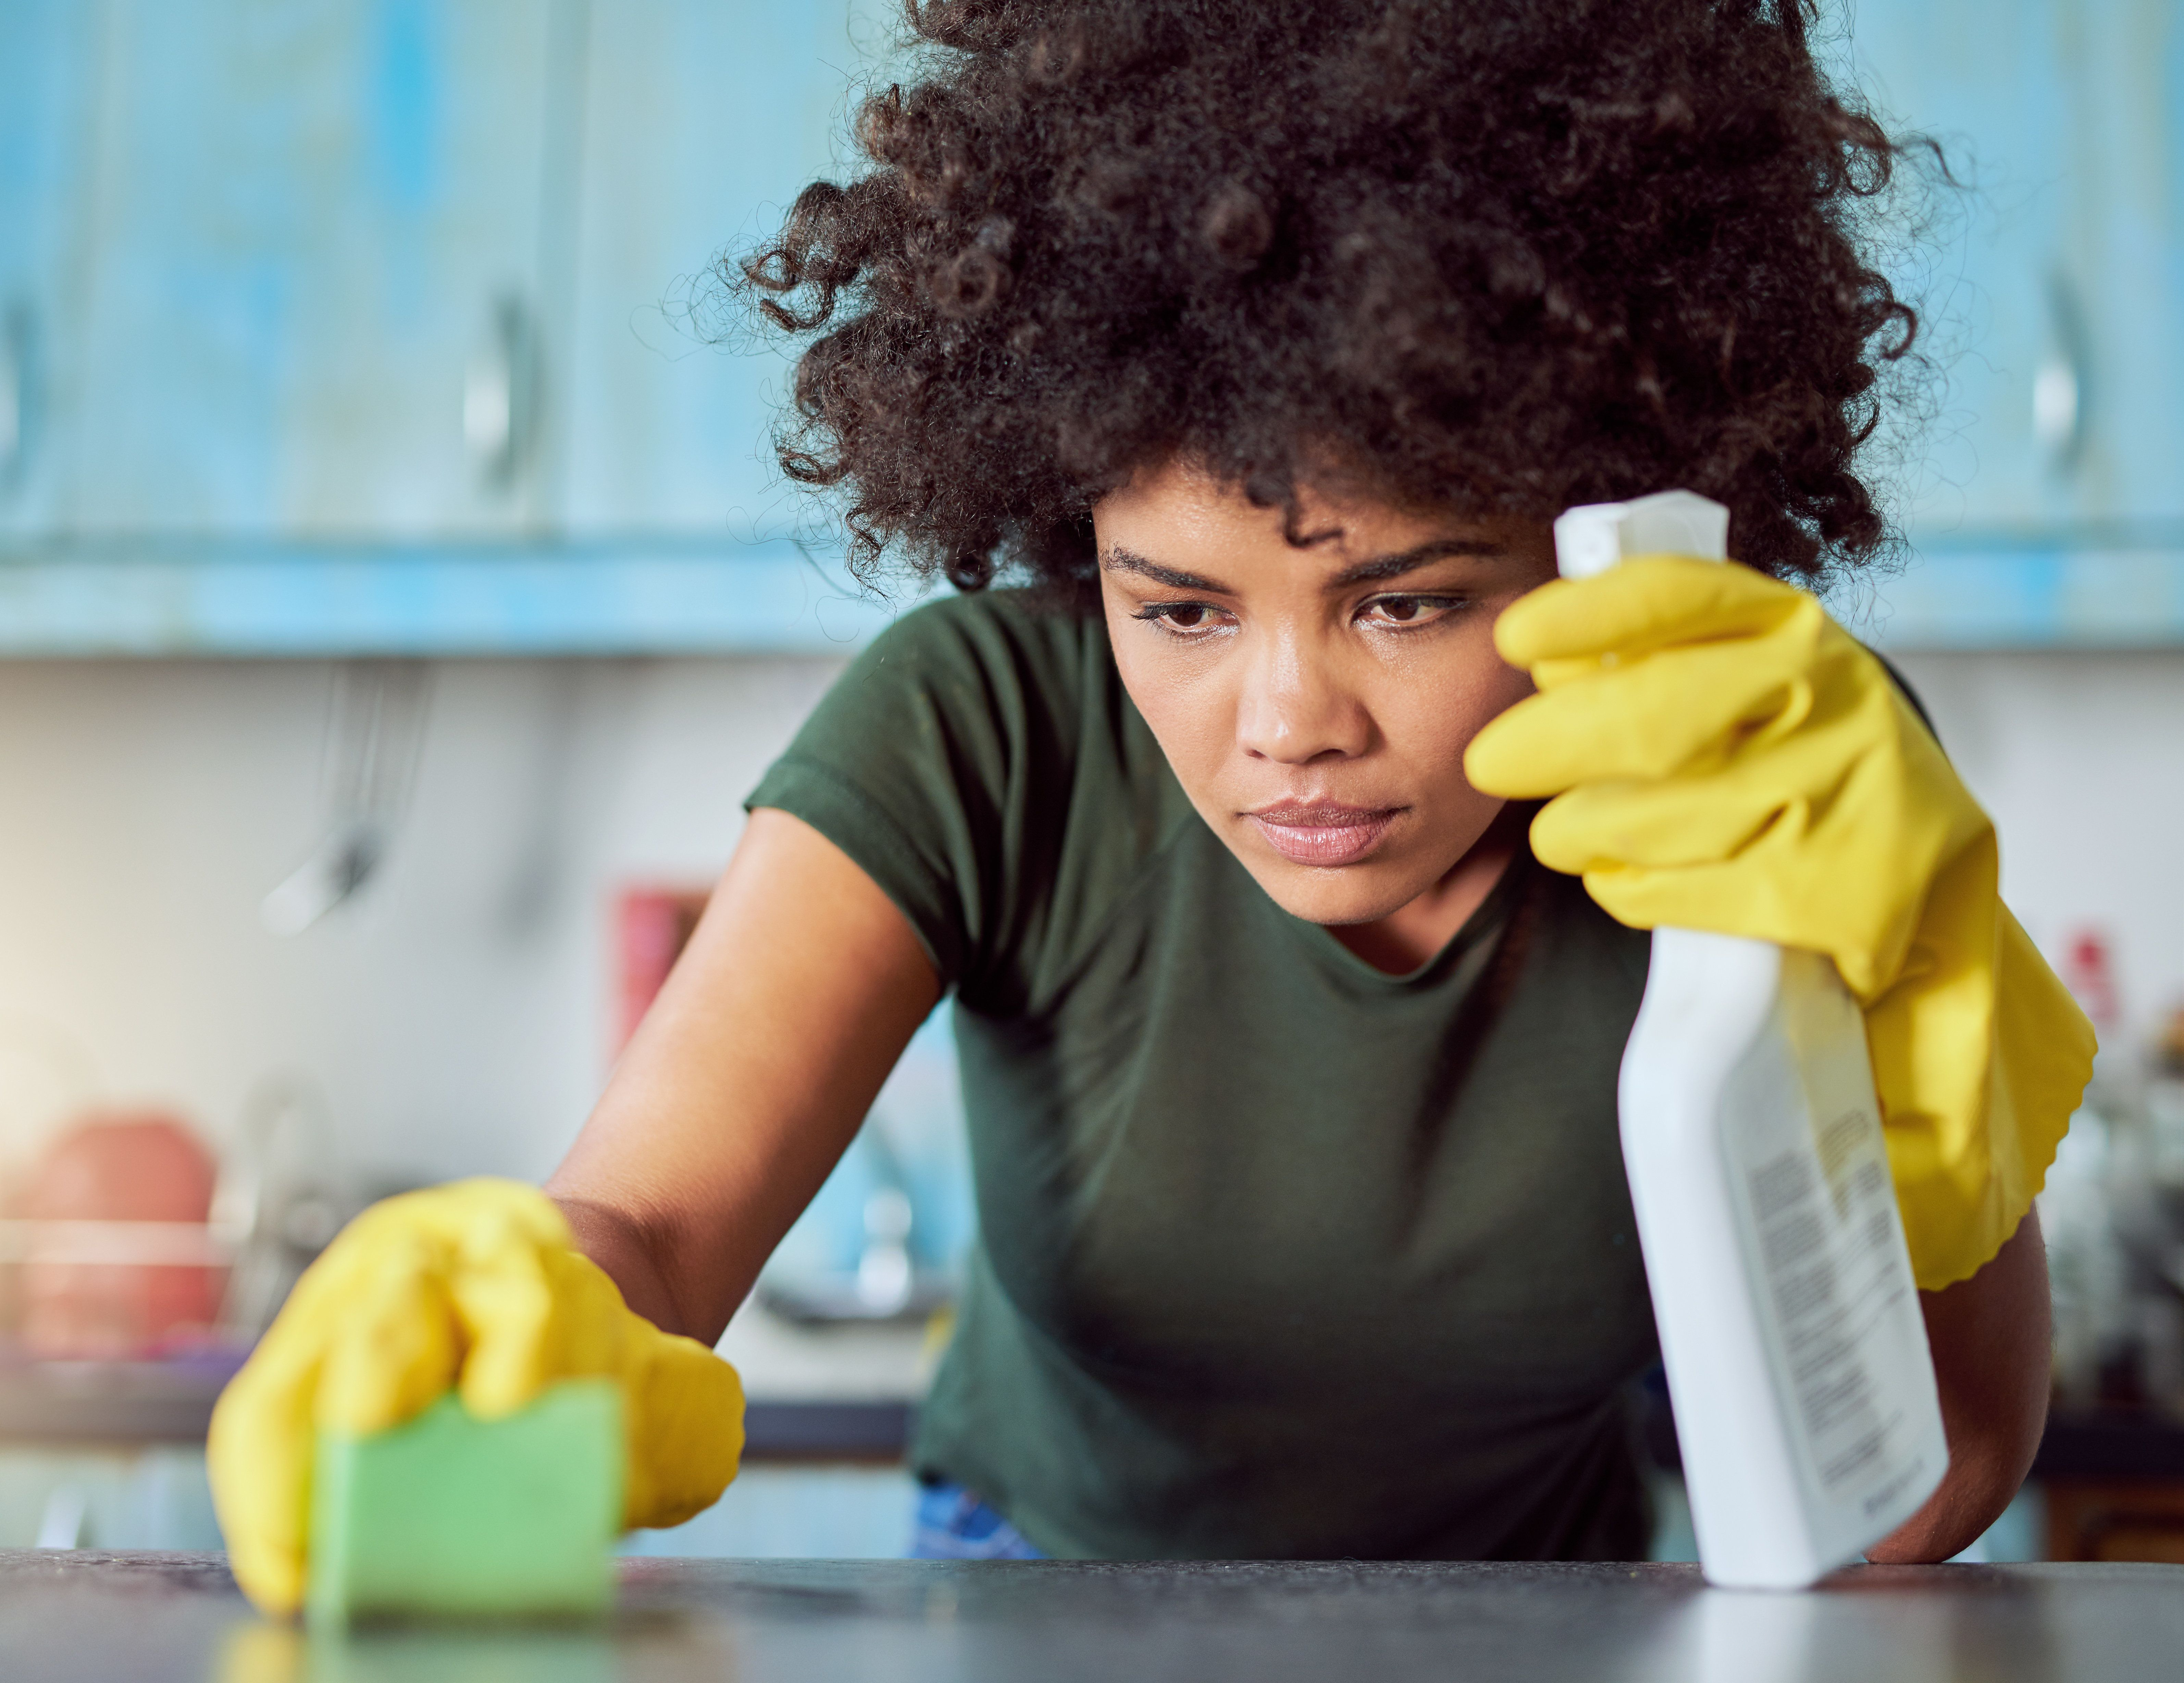 Cleaning Chemicals 'Likely Cause Substantial Damage To Women's Lungs', Study